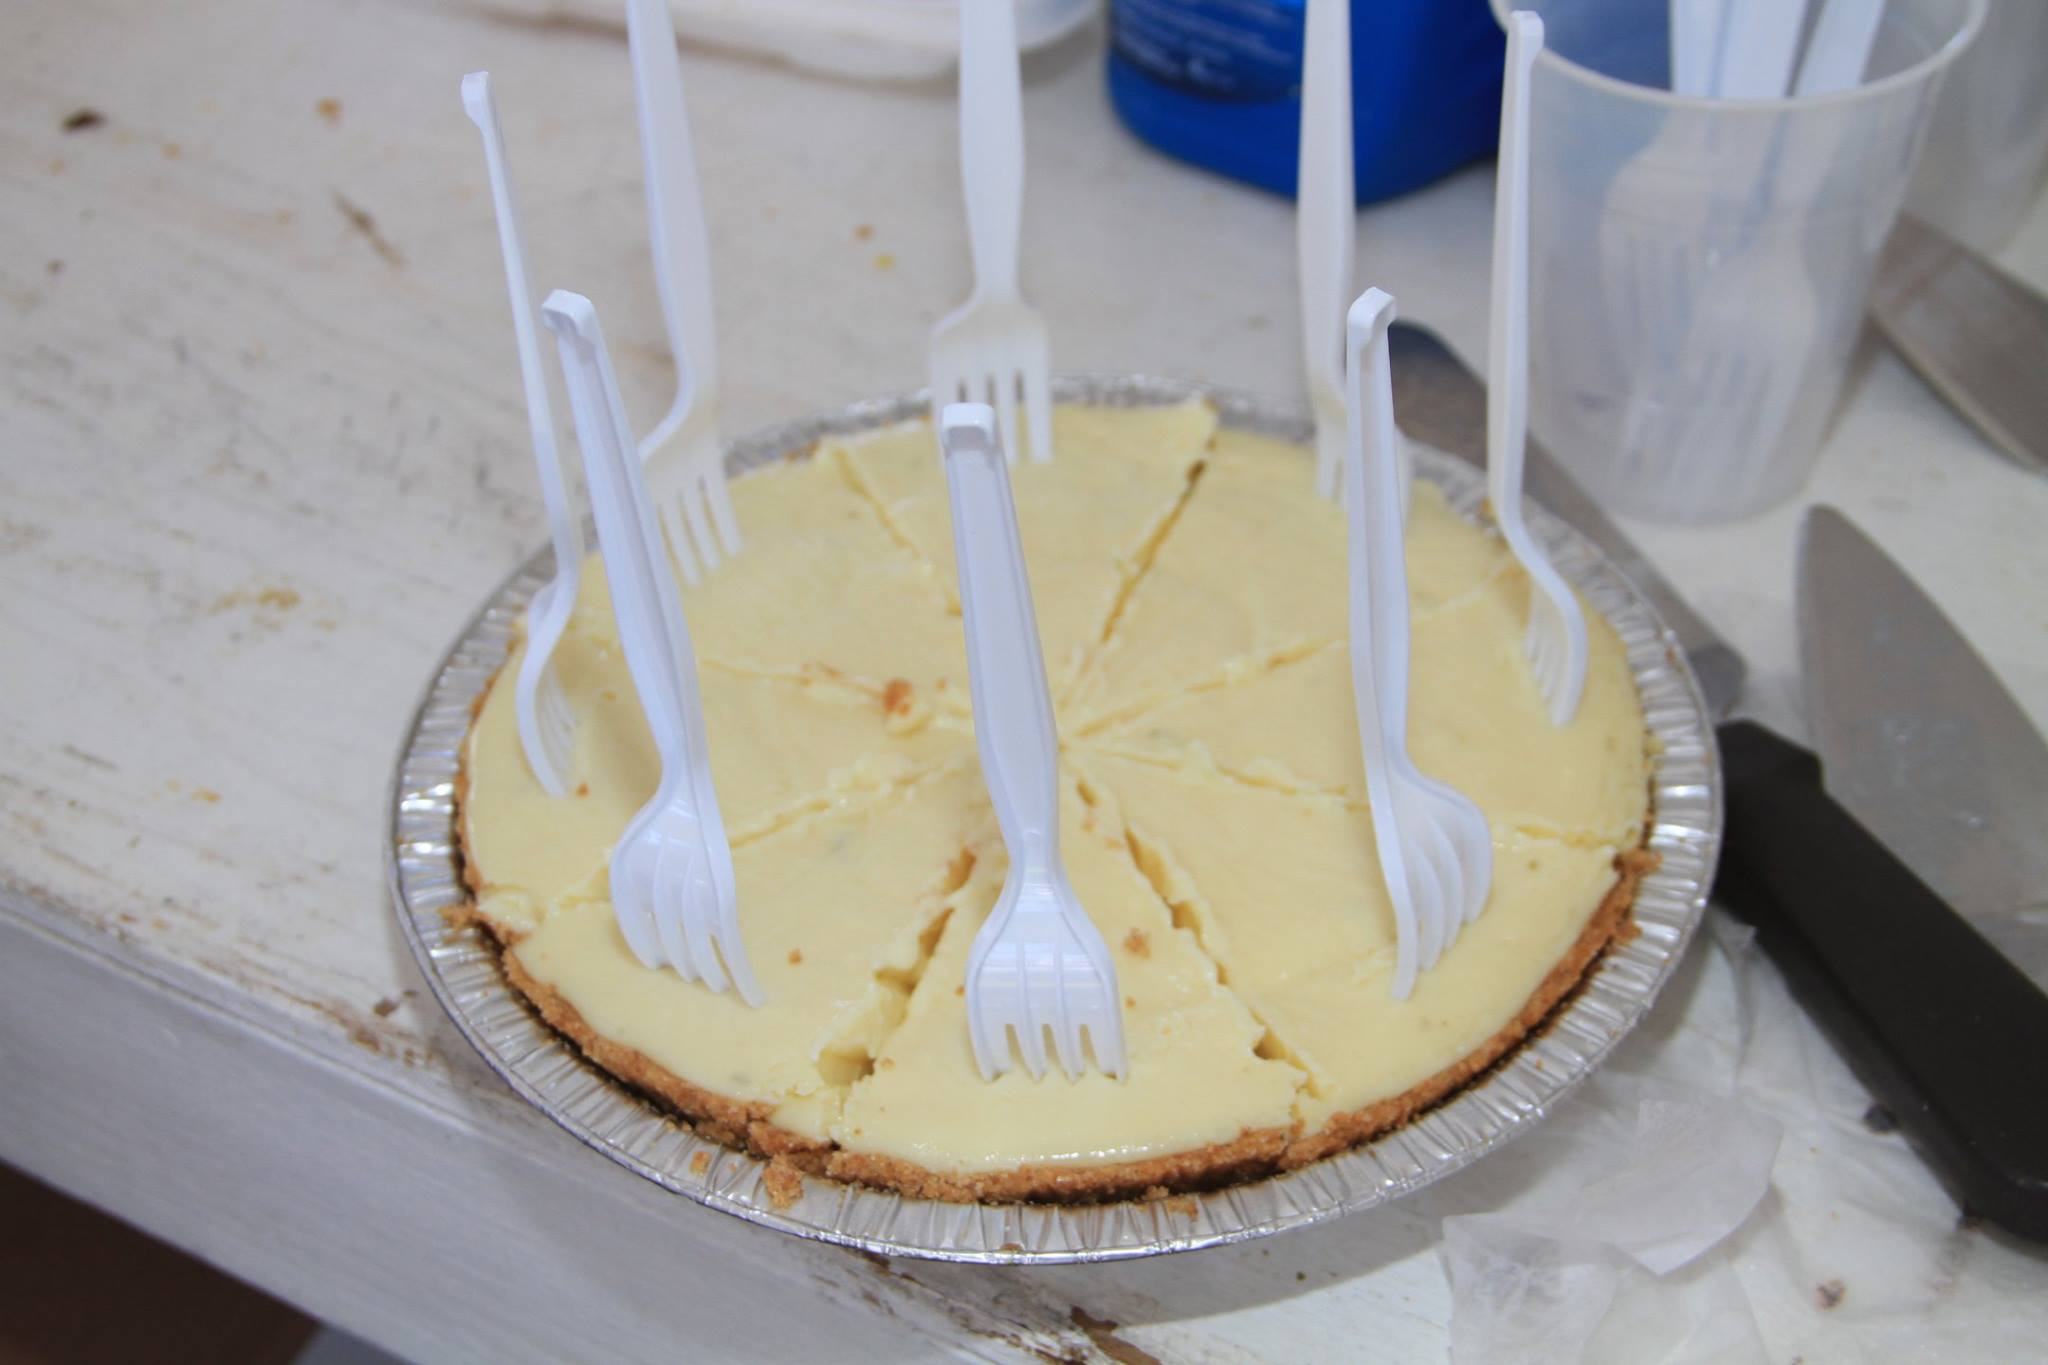 Save a little room for a wedge of Key Lime pie!